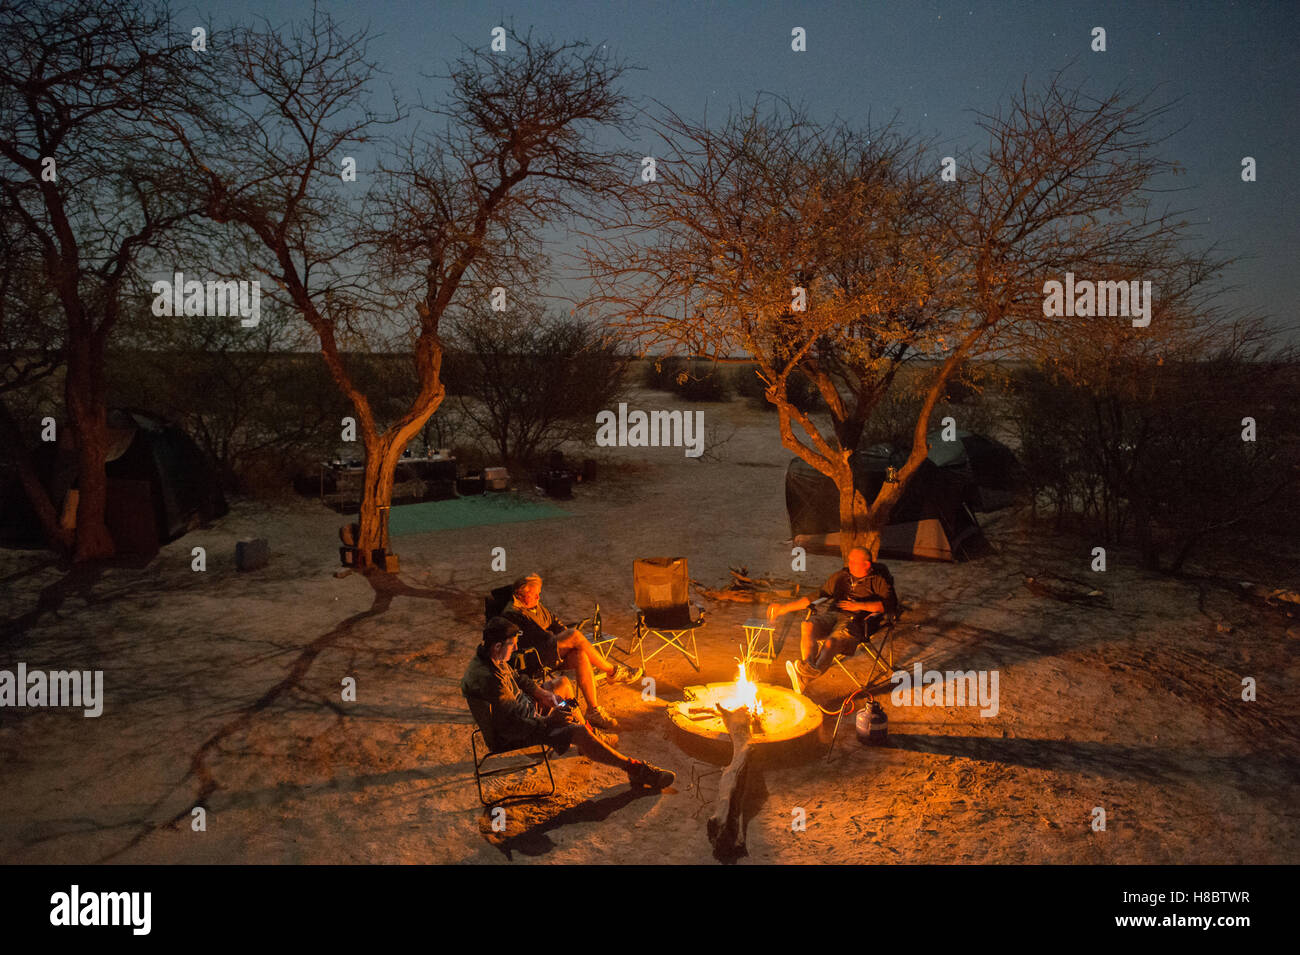 Top down view of campers sitting around a camp fire at night talking surrounded by Acacia trees - Stock Image